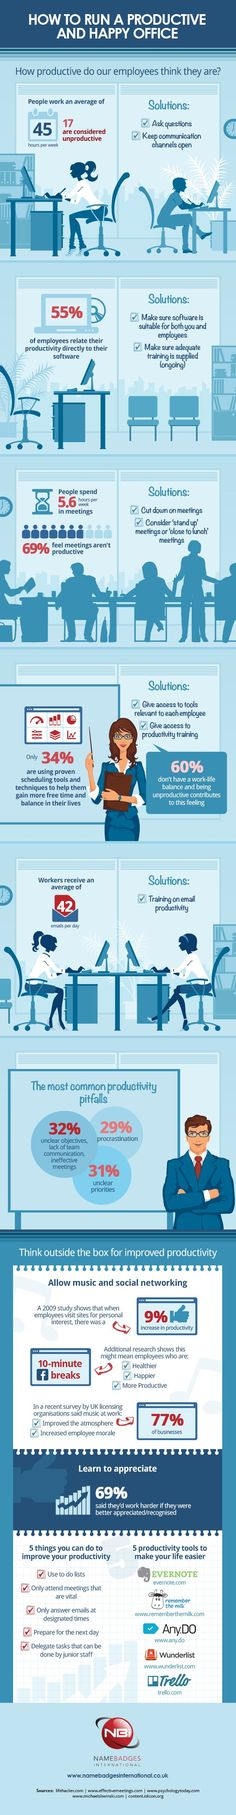 Run a Productive Office How to Run a Productive Office Filled with Happy Employees #Infographic